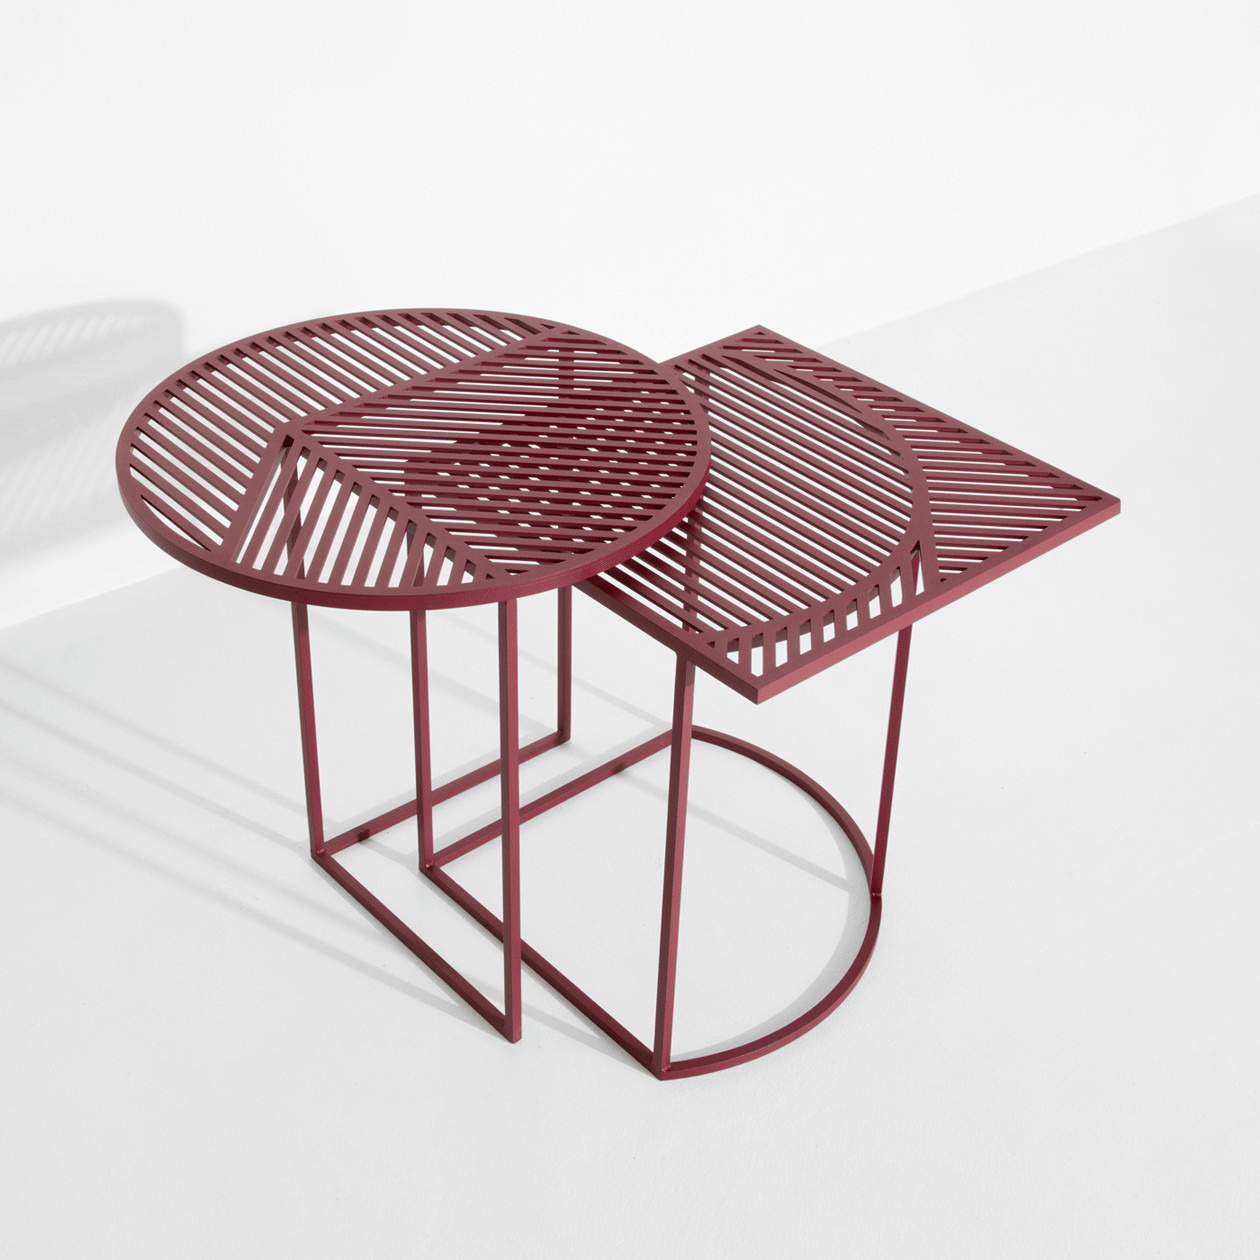 ISO A Side Table - With these two side-tables ISO-A (round) and ISO-B (square), POOL studio reaffirms its hyper graphic style. Each one of these tables taken individually highlight a pattern; the two tables presented together create a new one: their superposition gives birth to a «moiré» effect, and the pattern becomes alive.